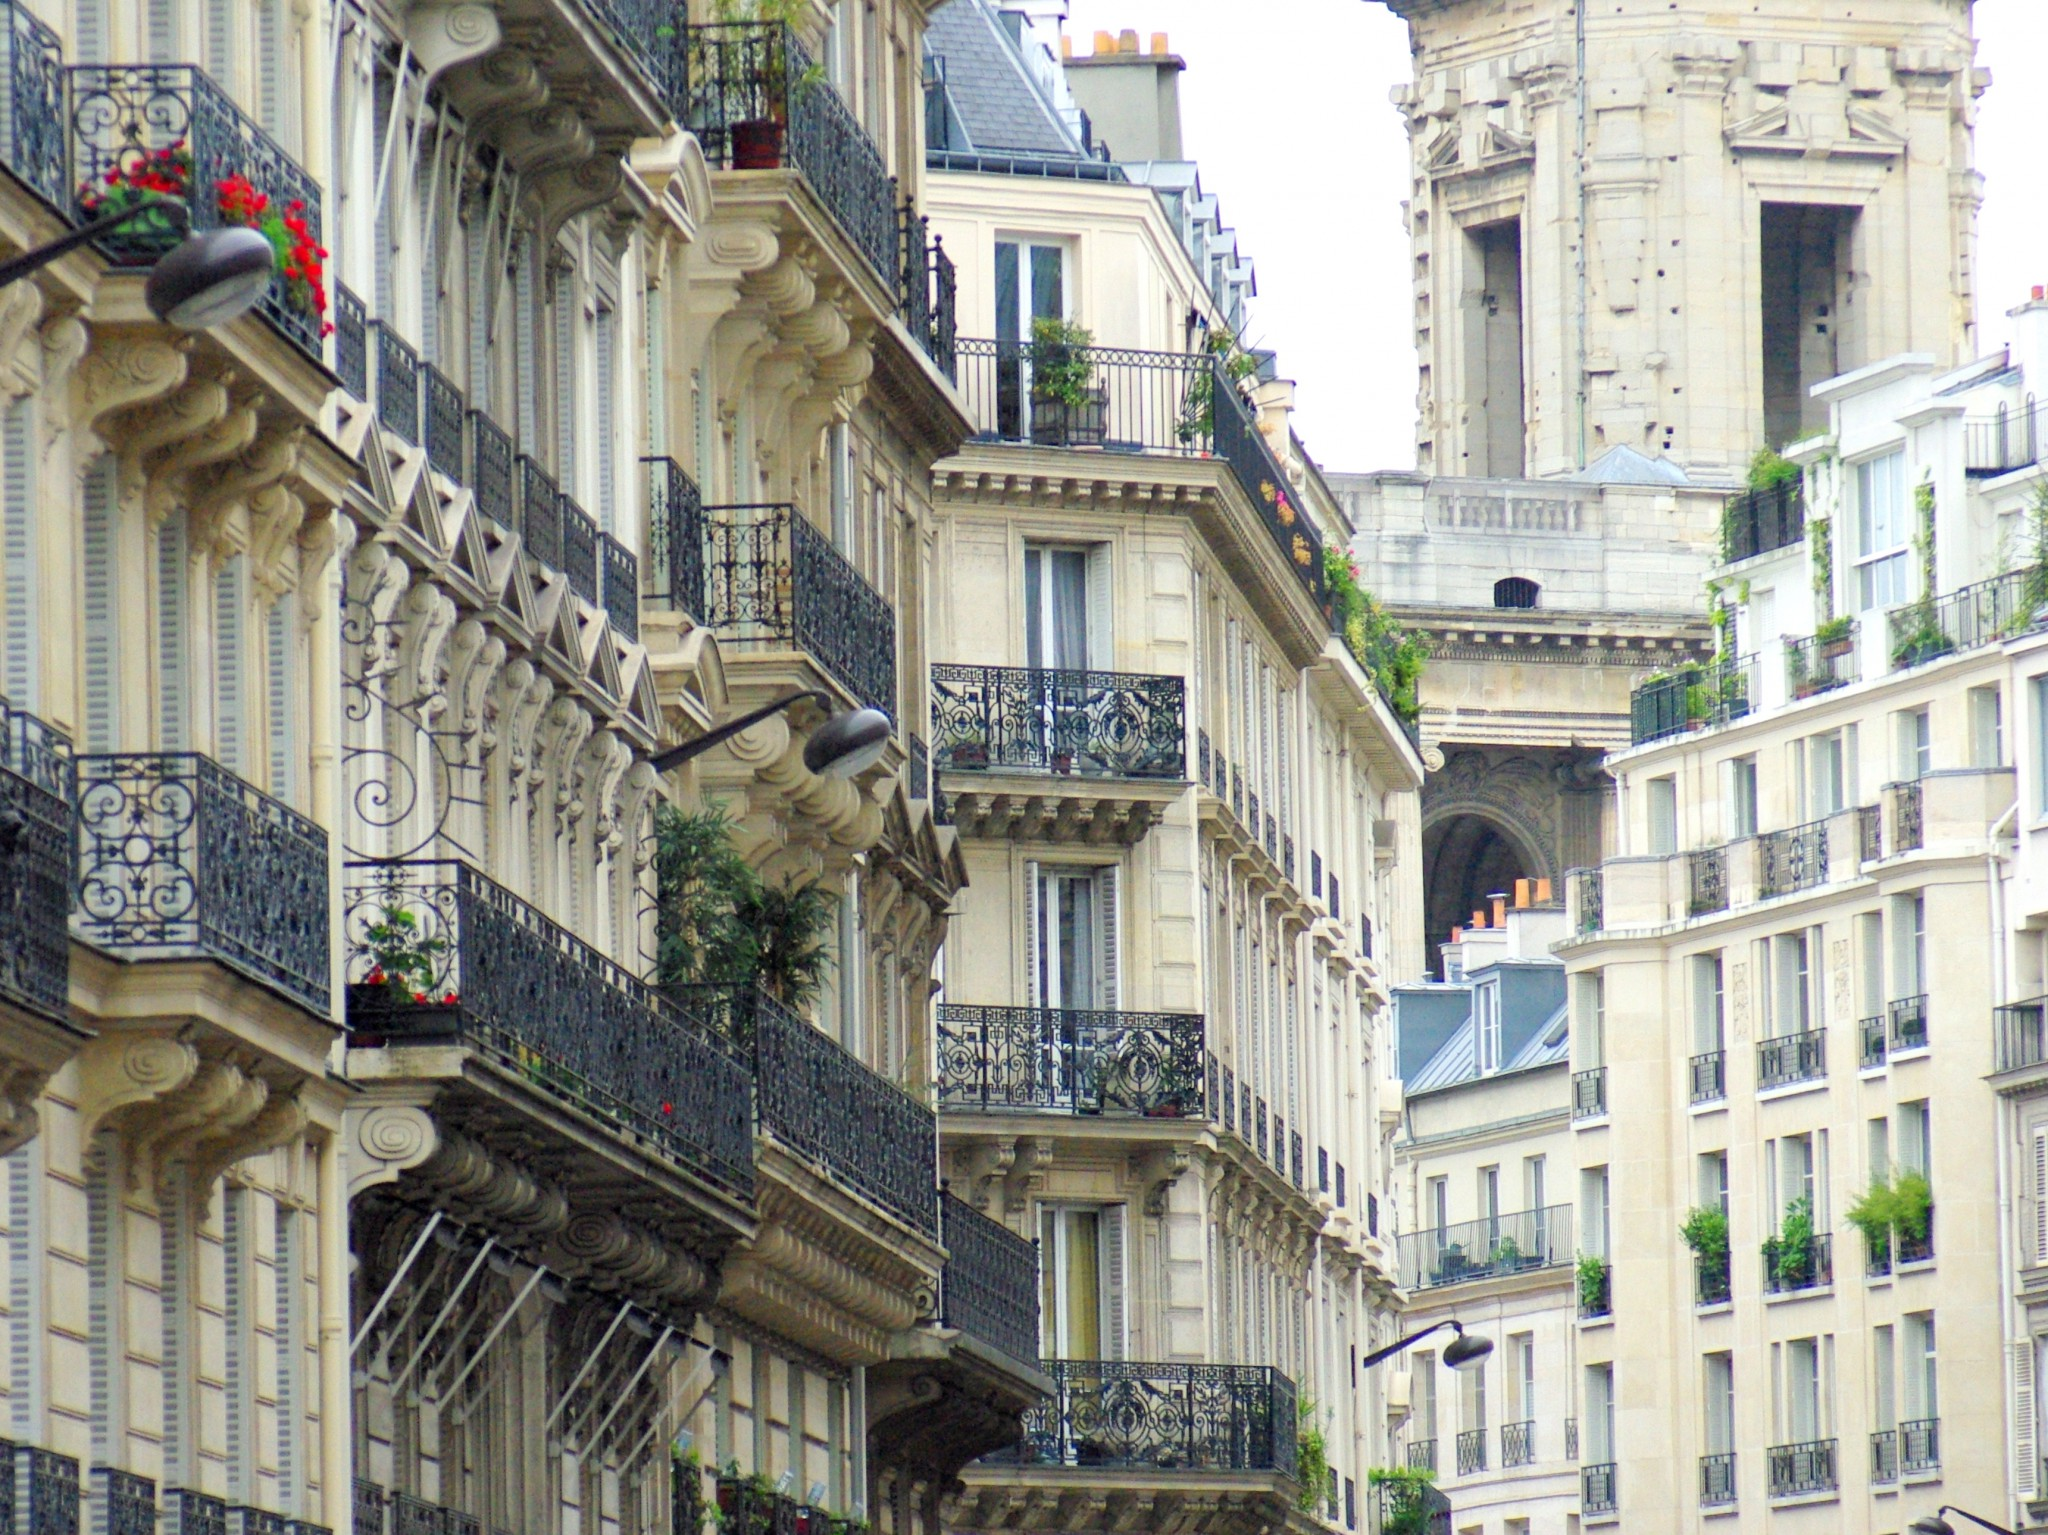 Sixth Arrondist Of Paris French Moments